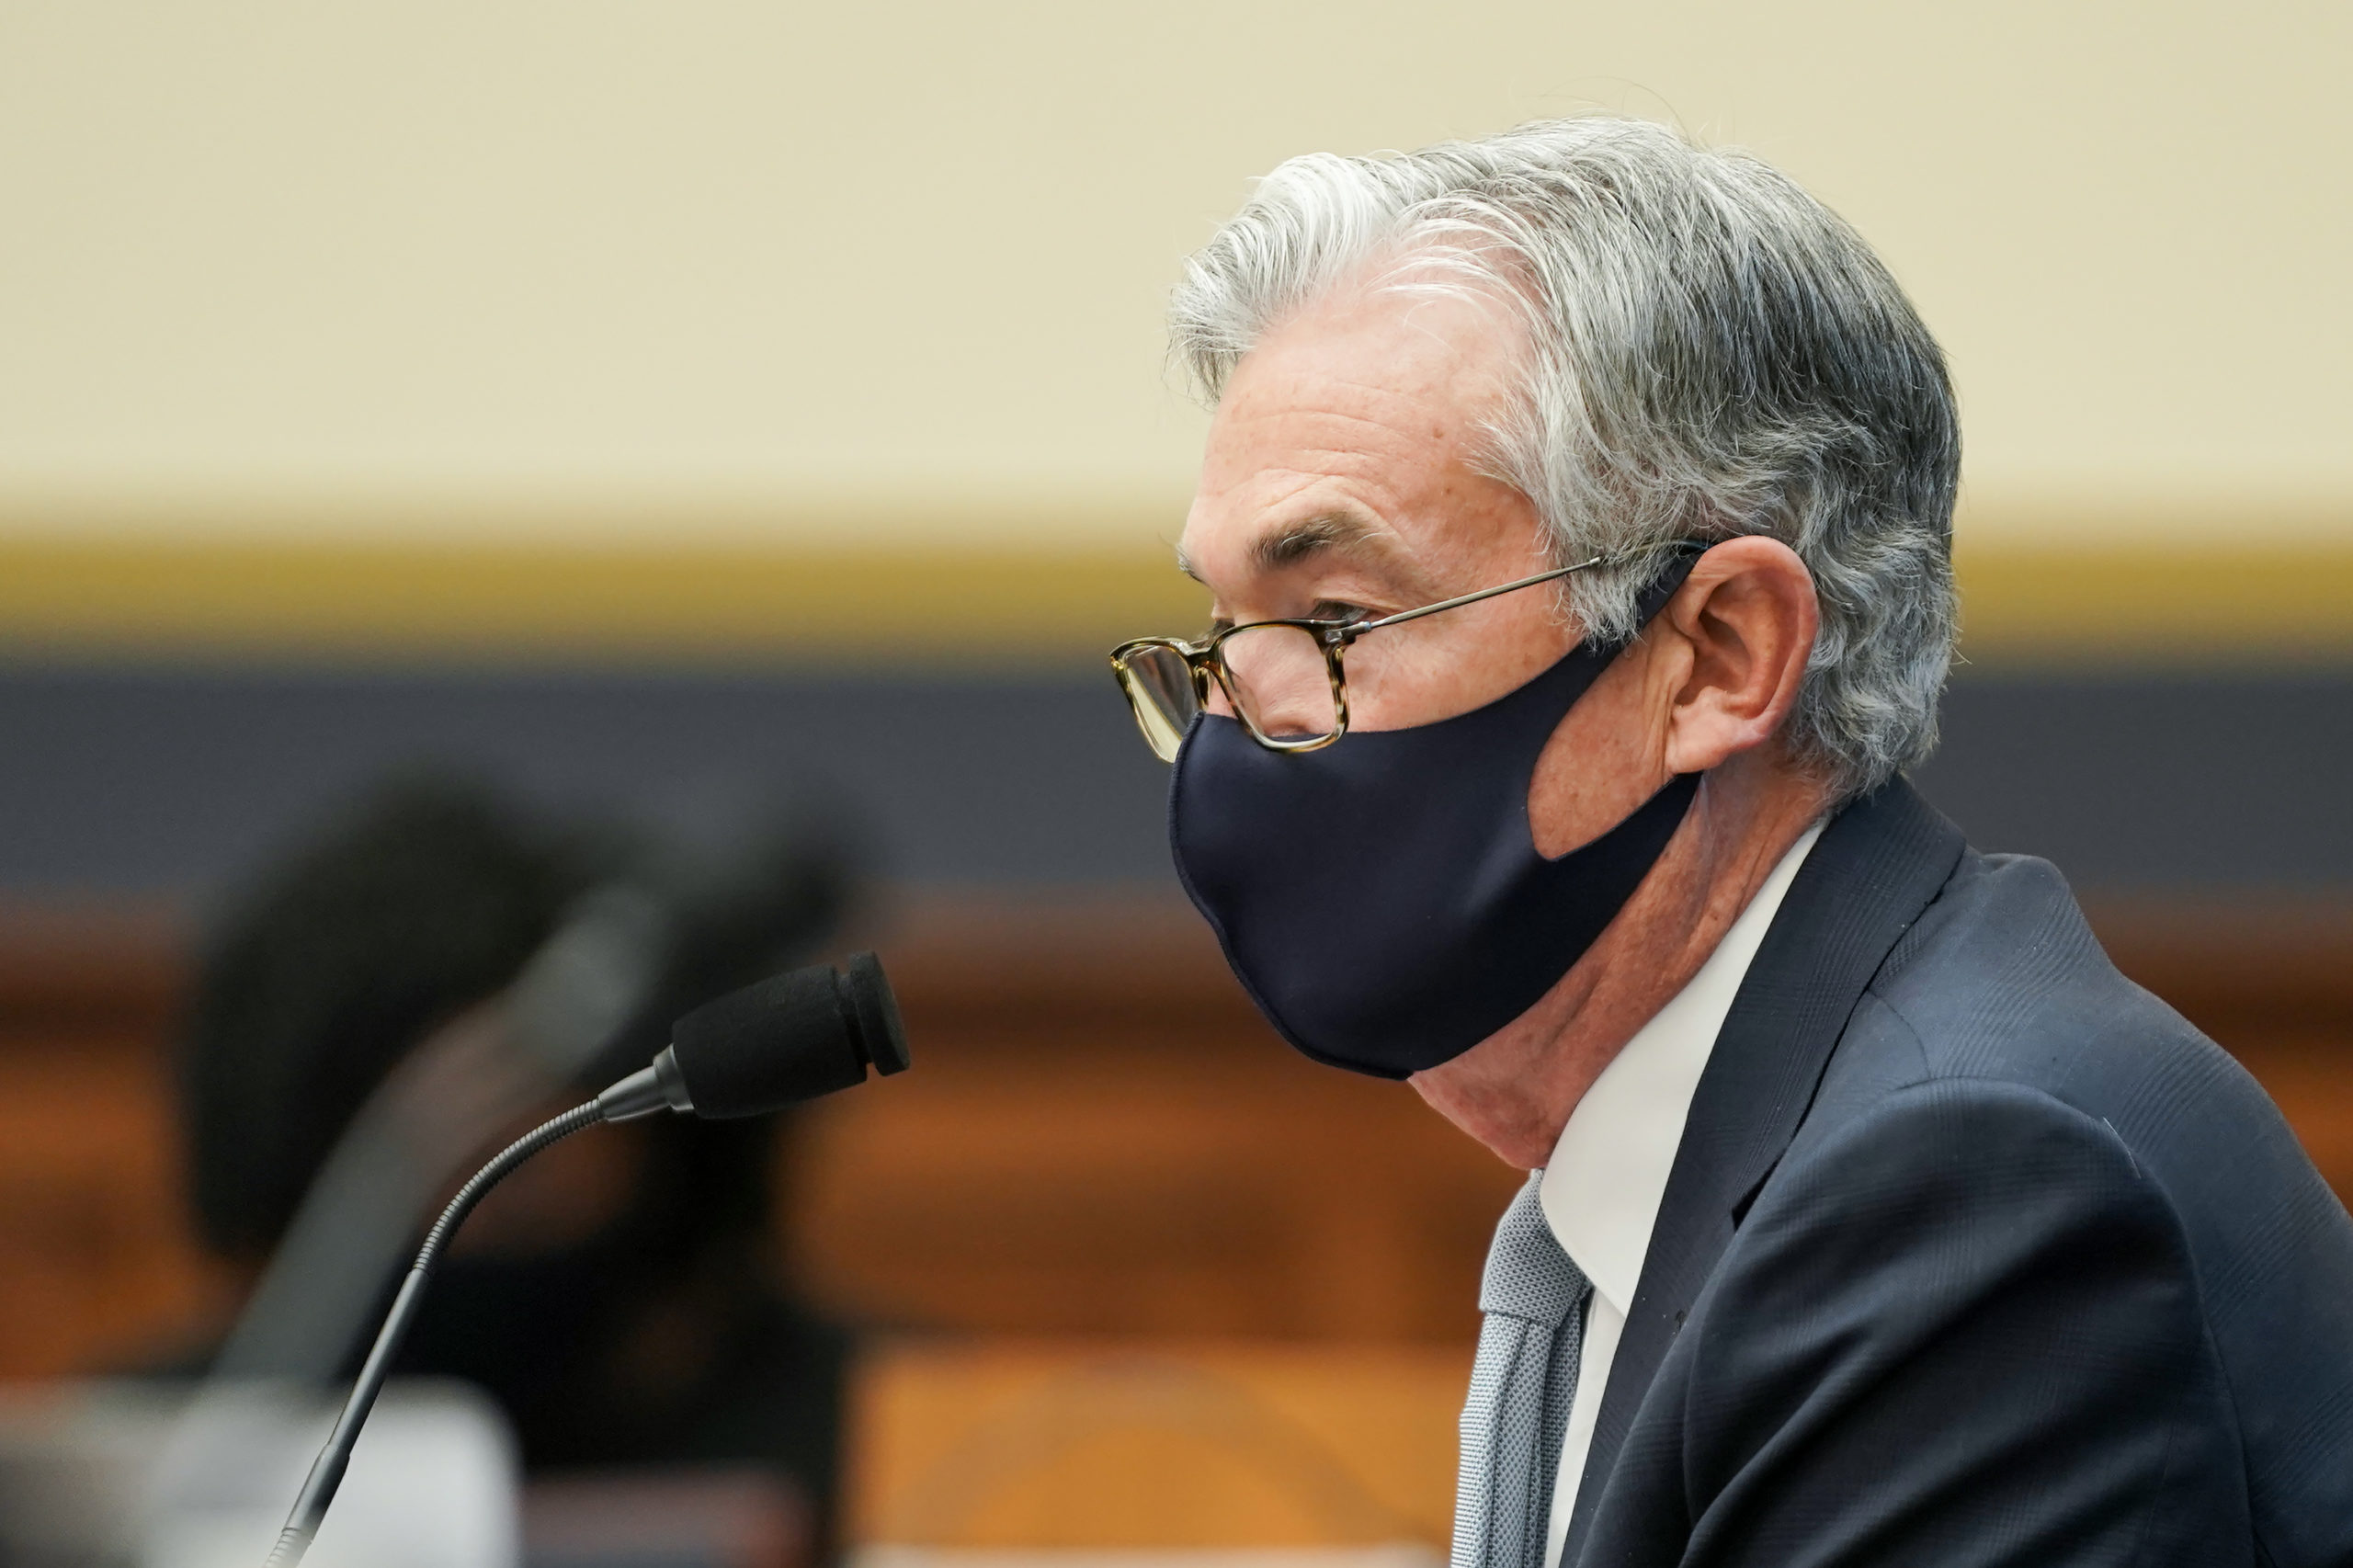 Federal Reserve Chair Jerome Powell listens to a question during a hearing on Dec. 2. (Getty Images)